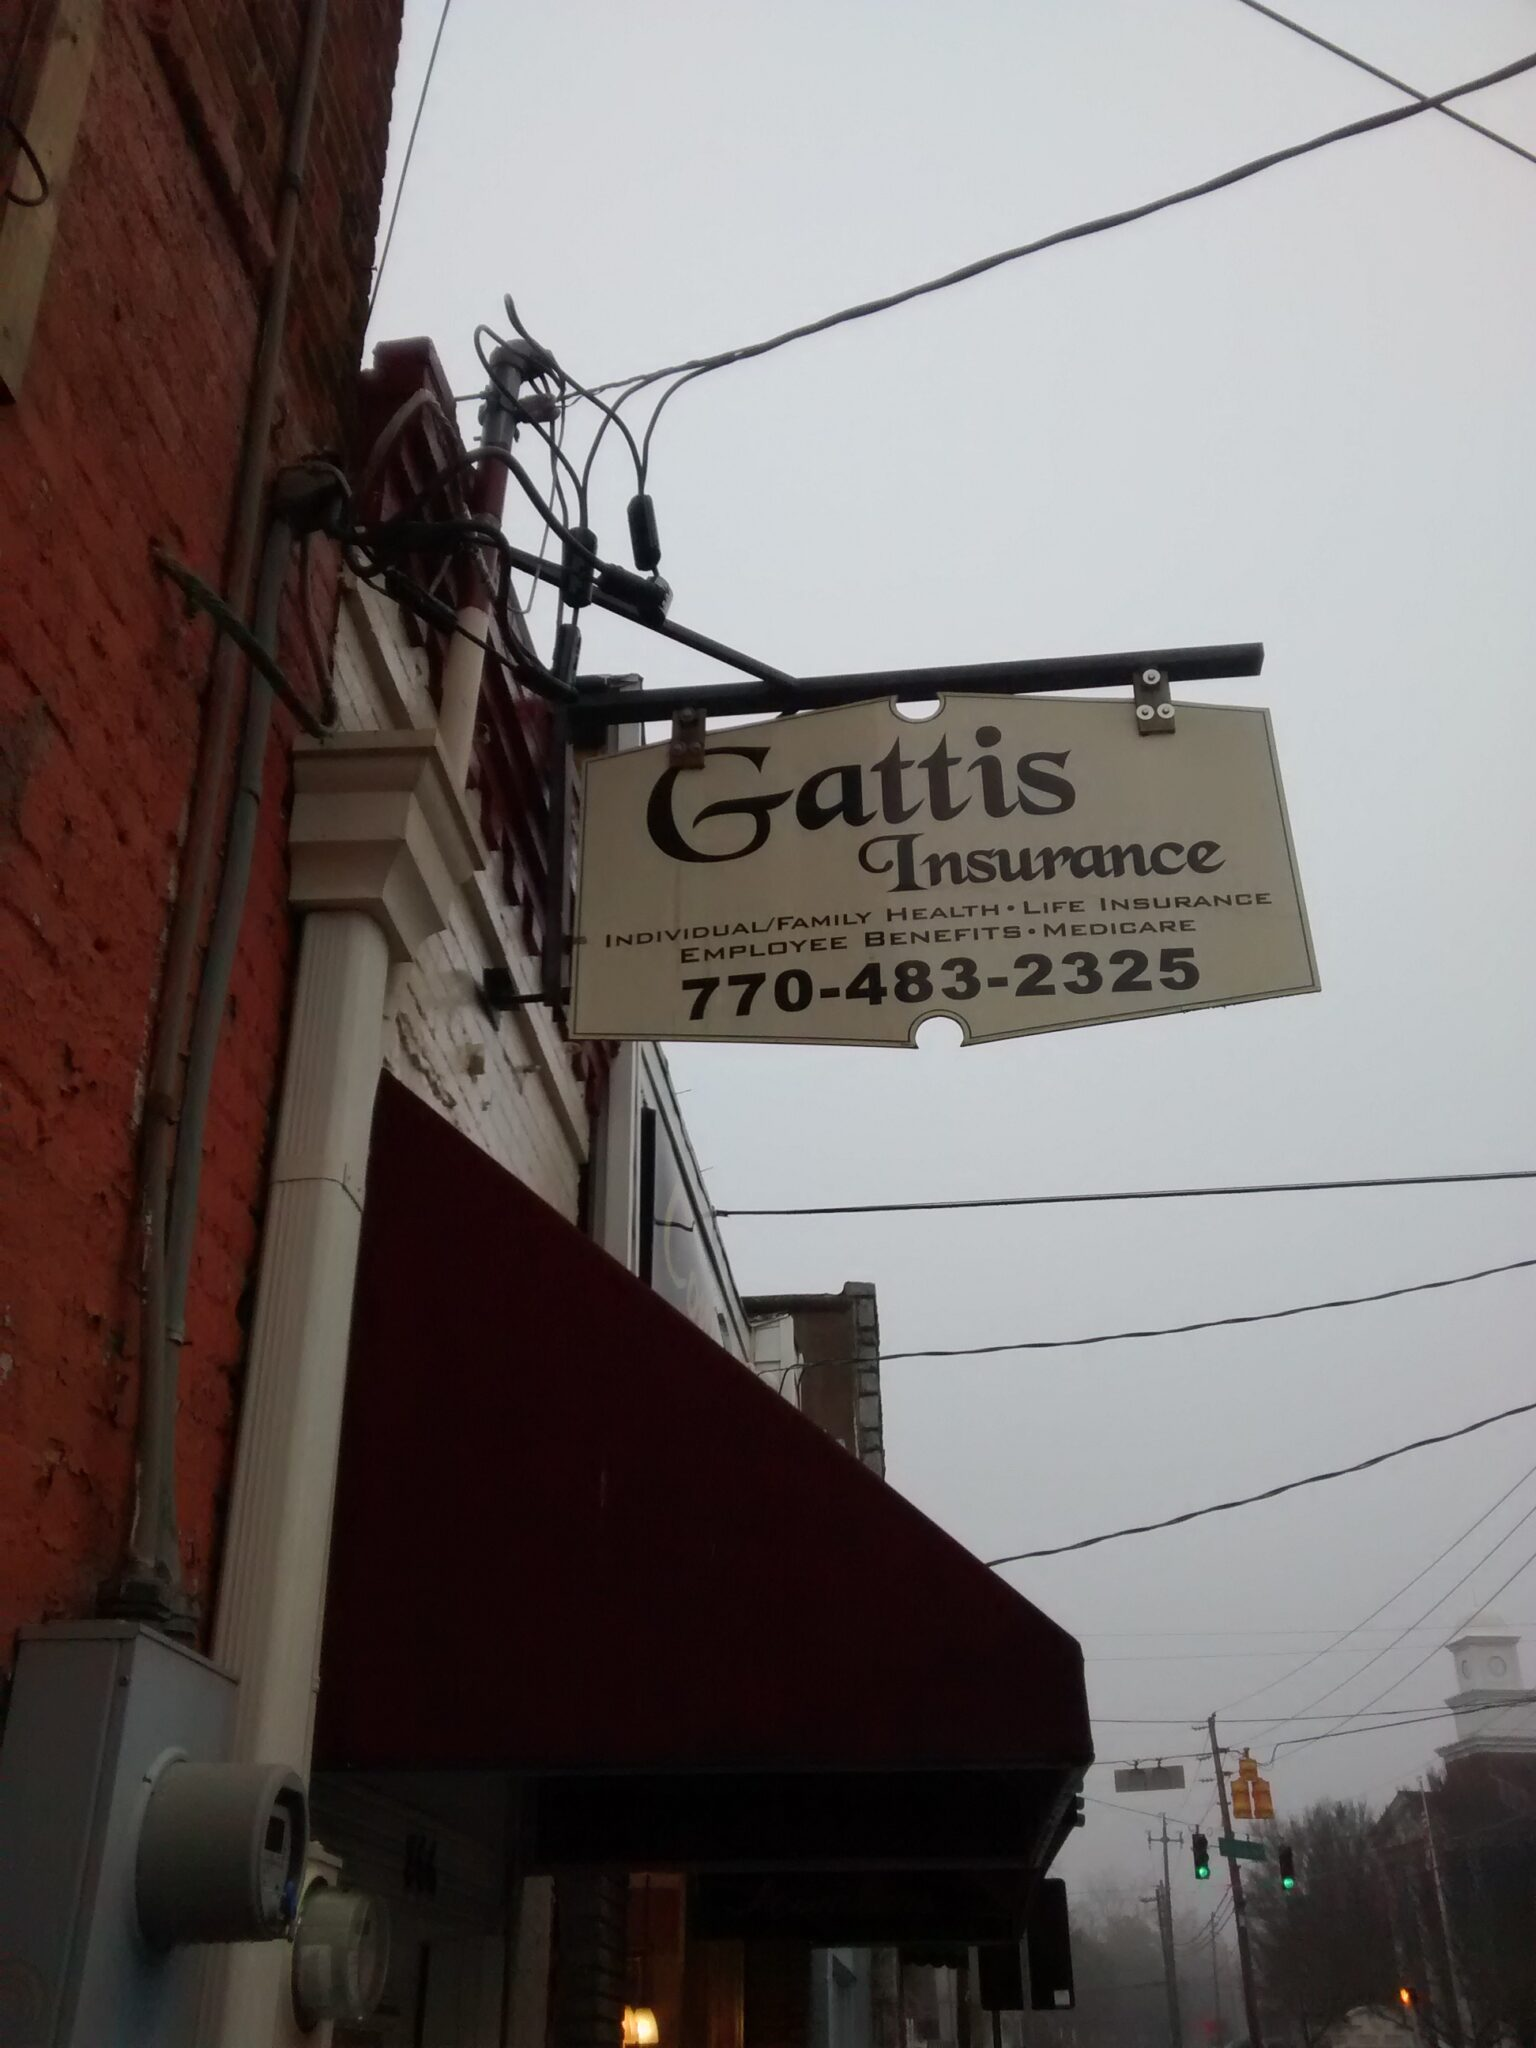 Outside my office, there is a sign for Gattis insurance. The Braves don't have much of this.